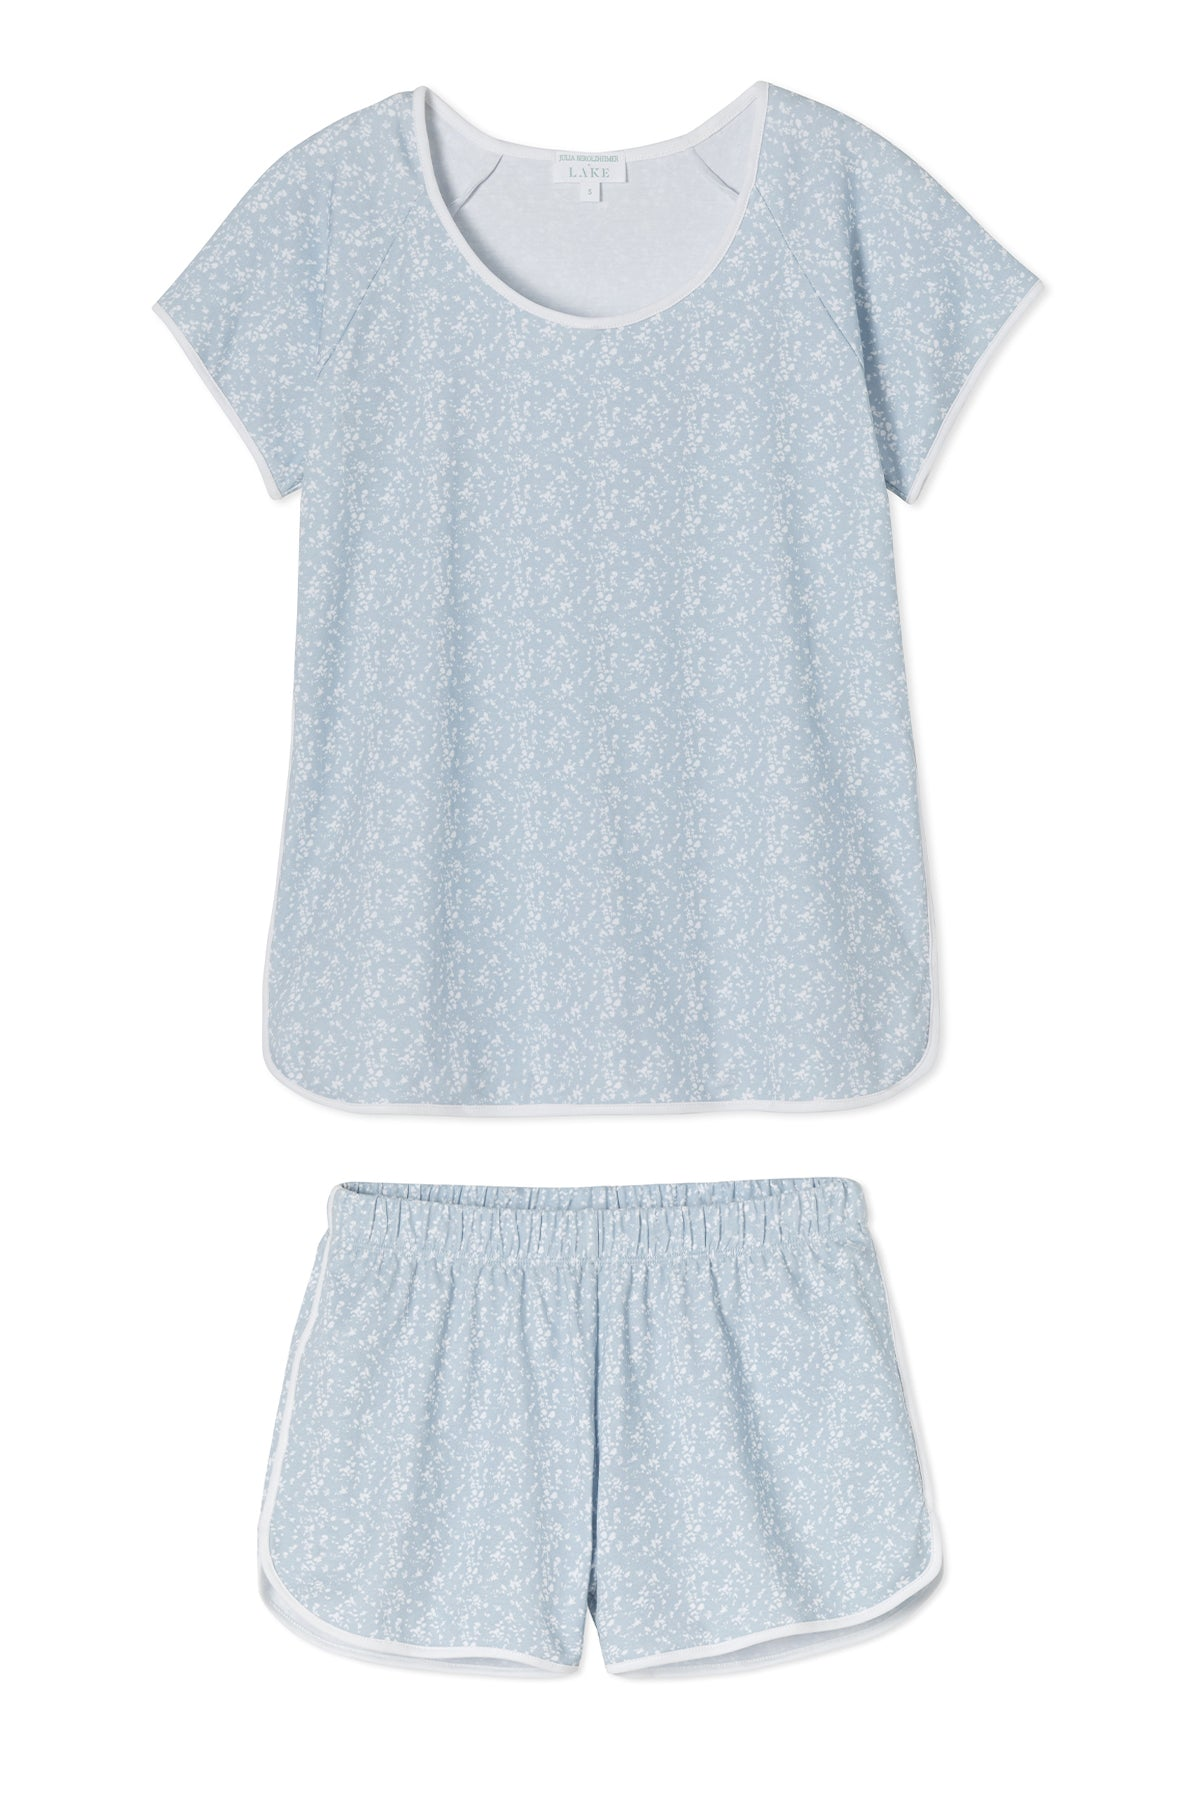 JB x LAKE Pima Shorts Set in Blue Meadow